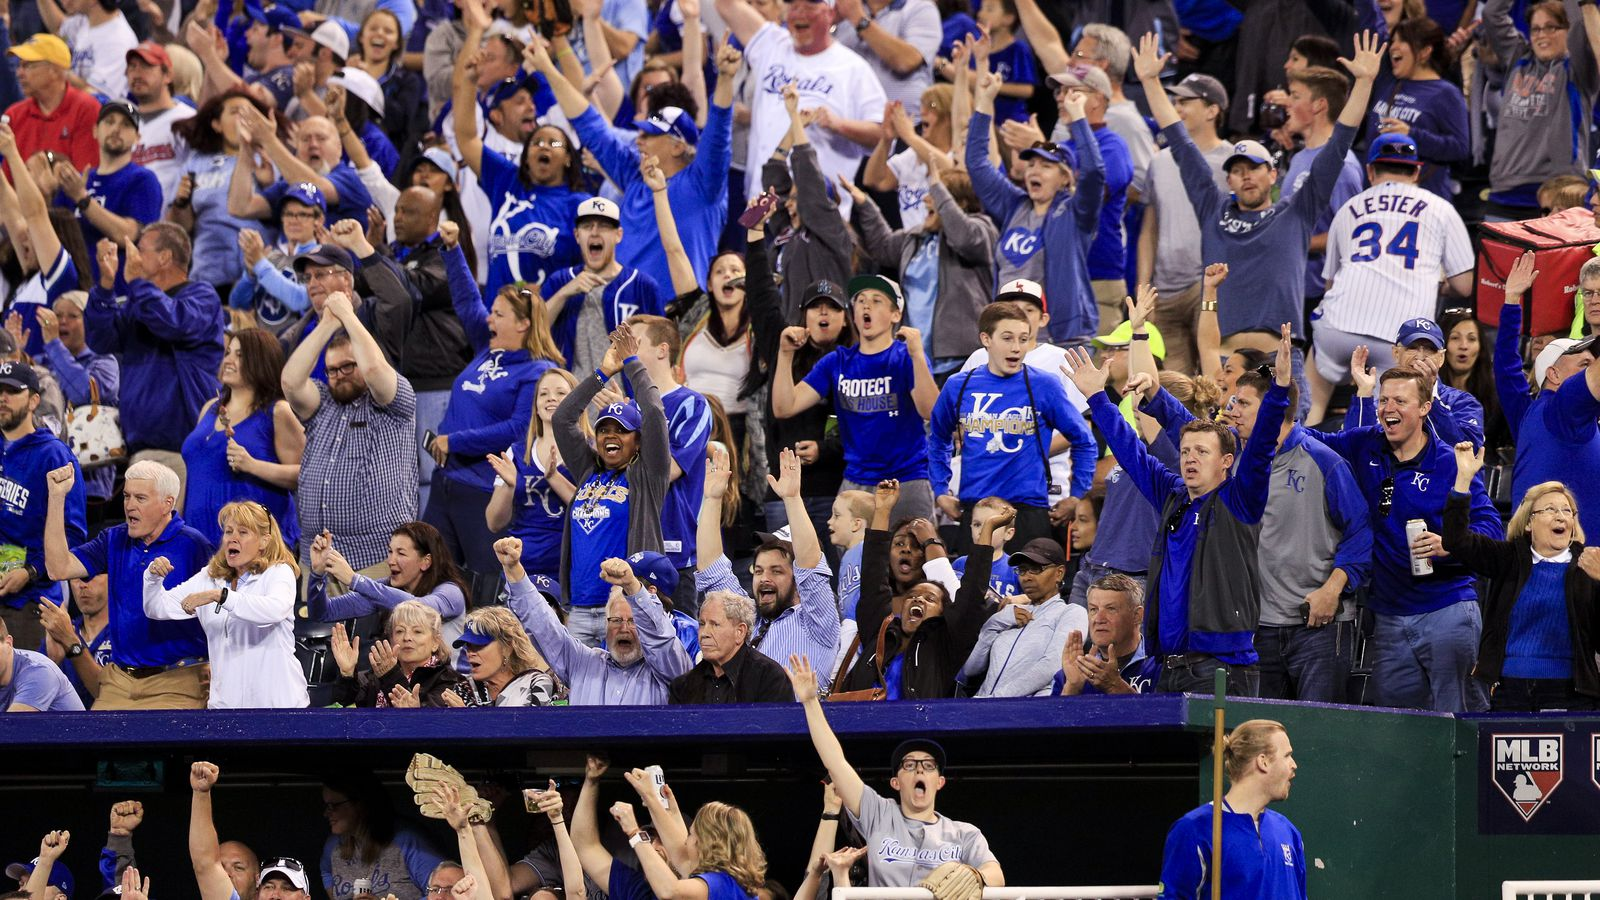 We want your fan predictions on the 2019 MLB season!